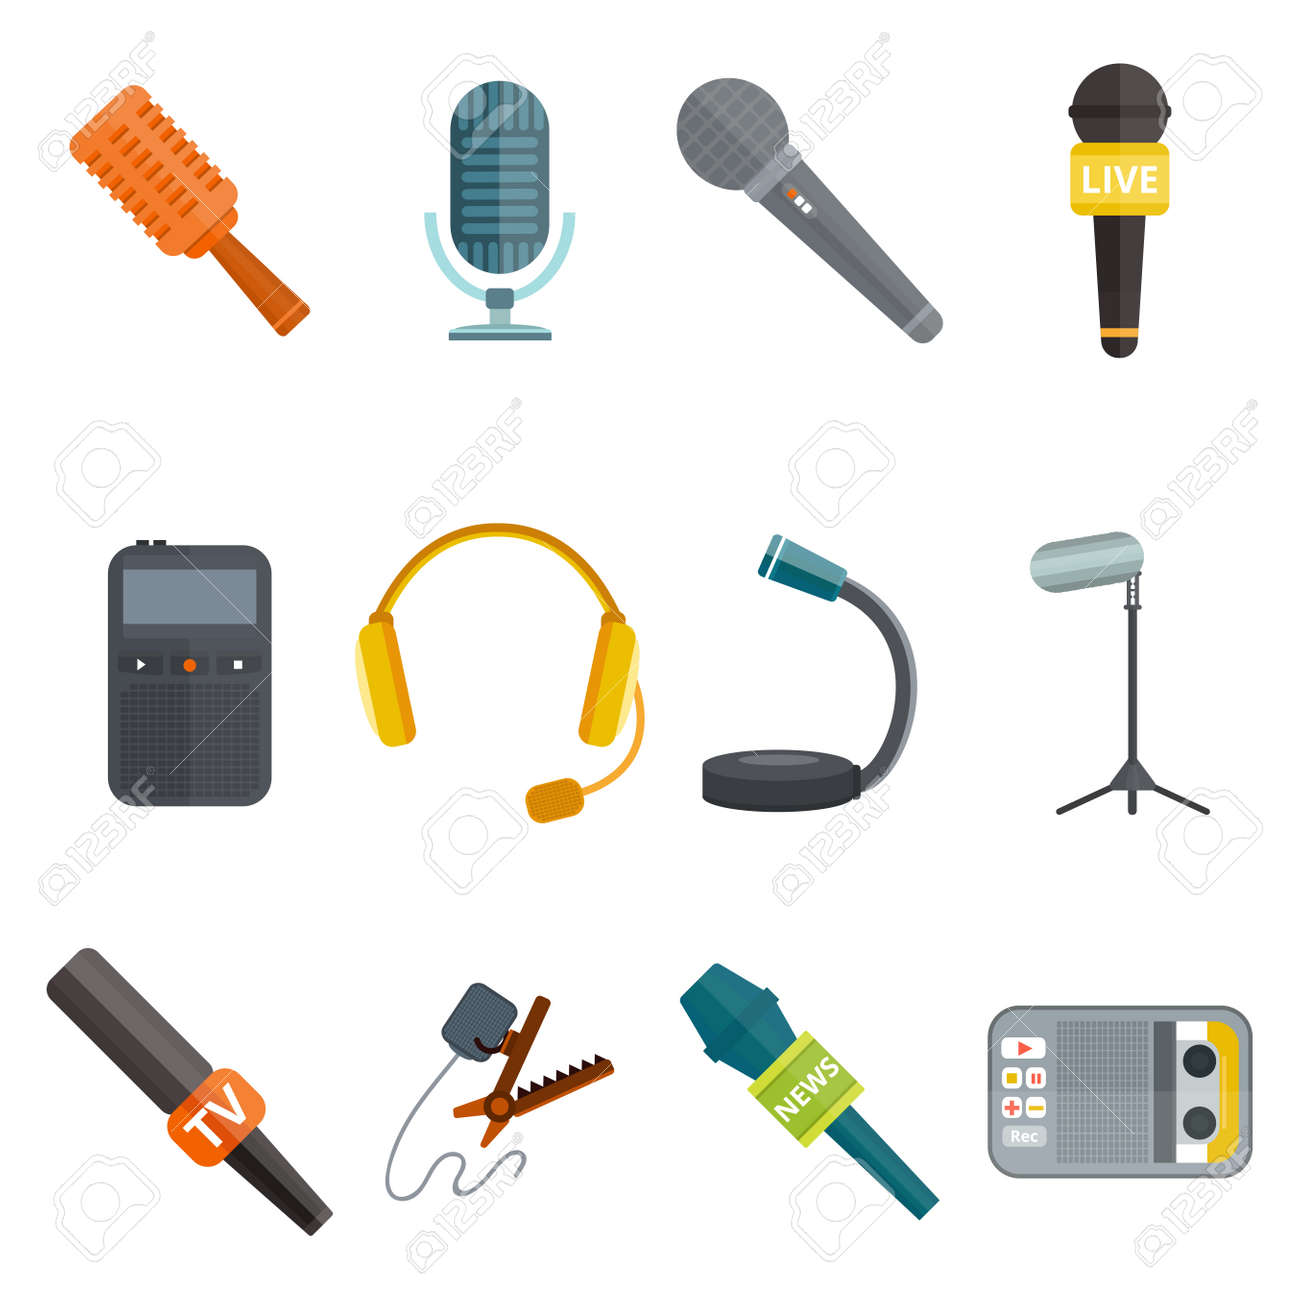 Microphone vector icon isolated interview music TV tool show